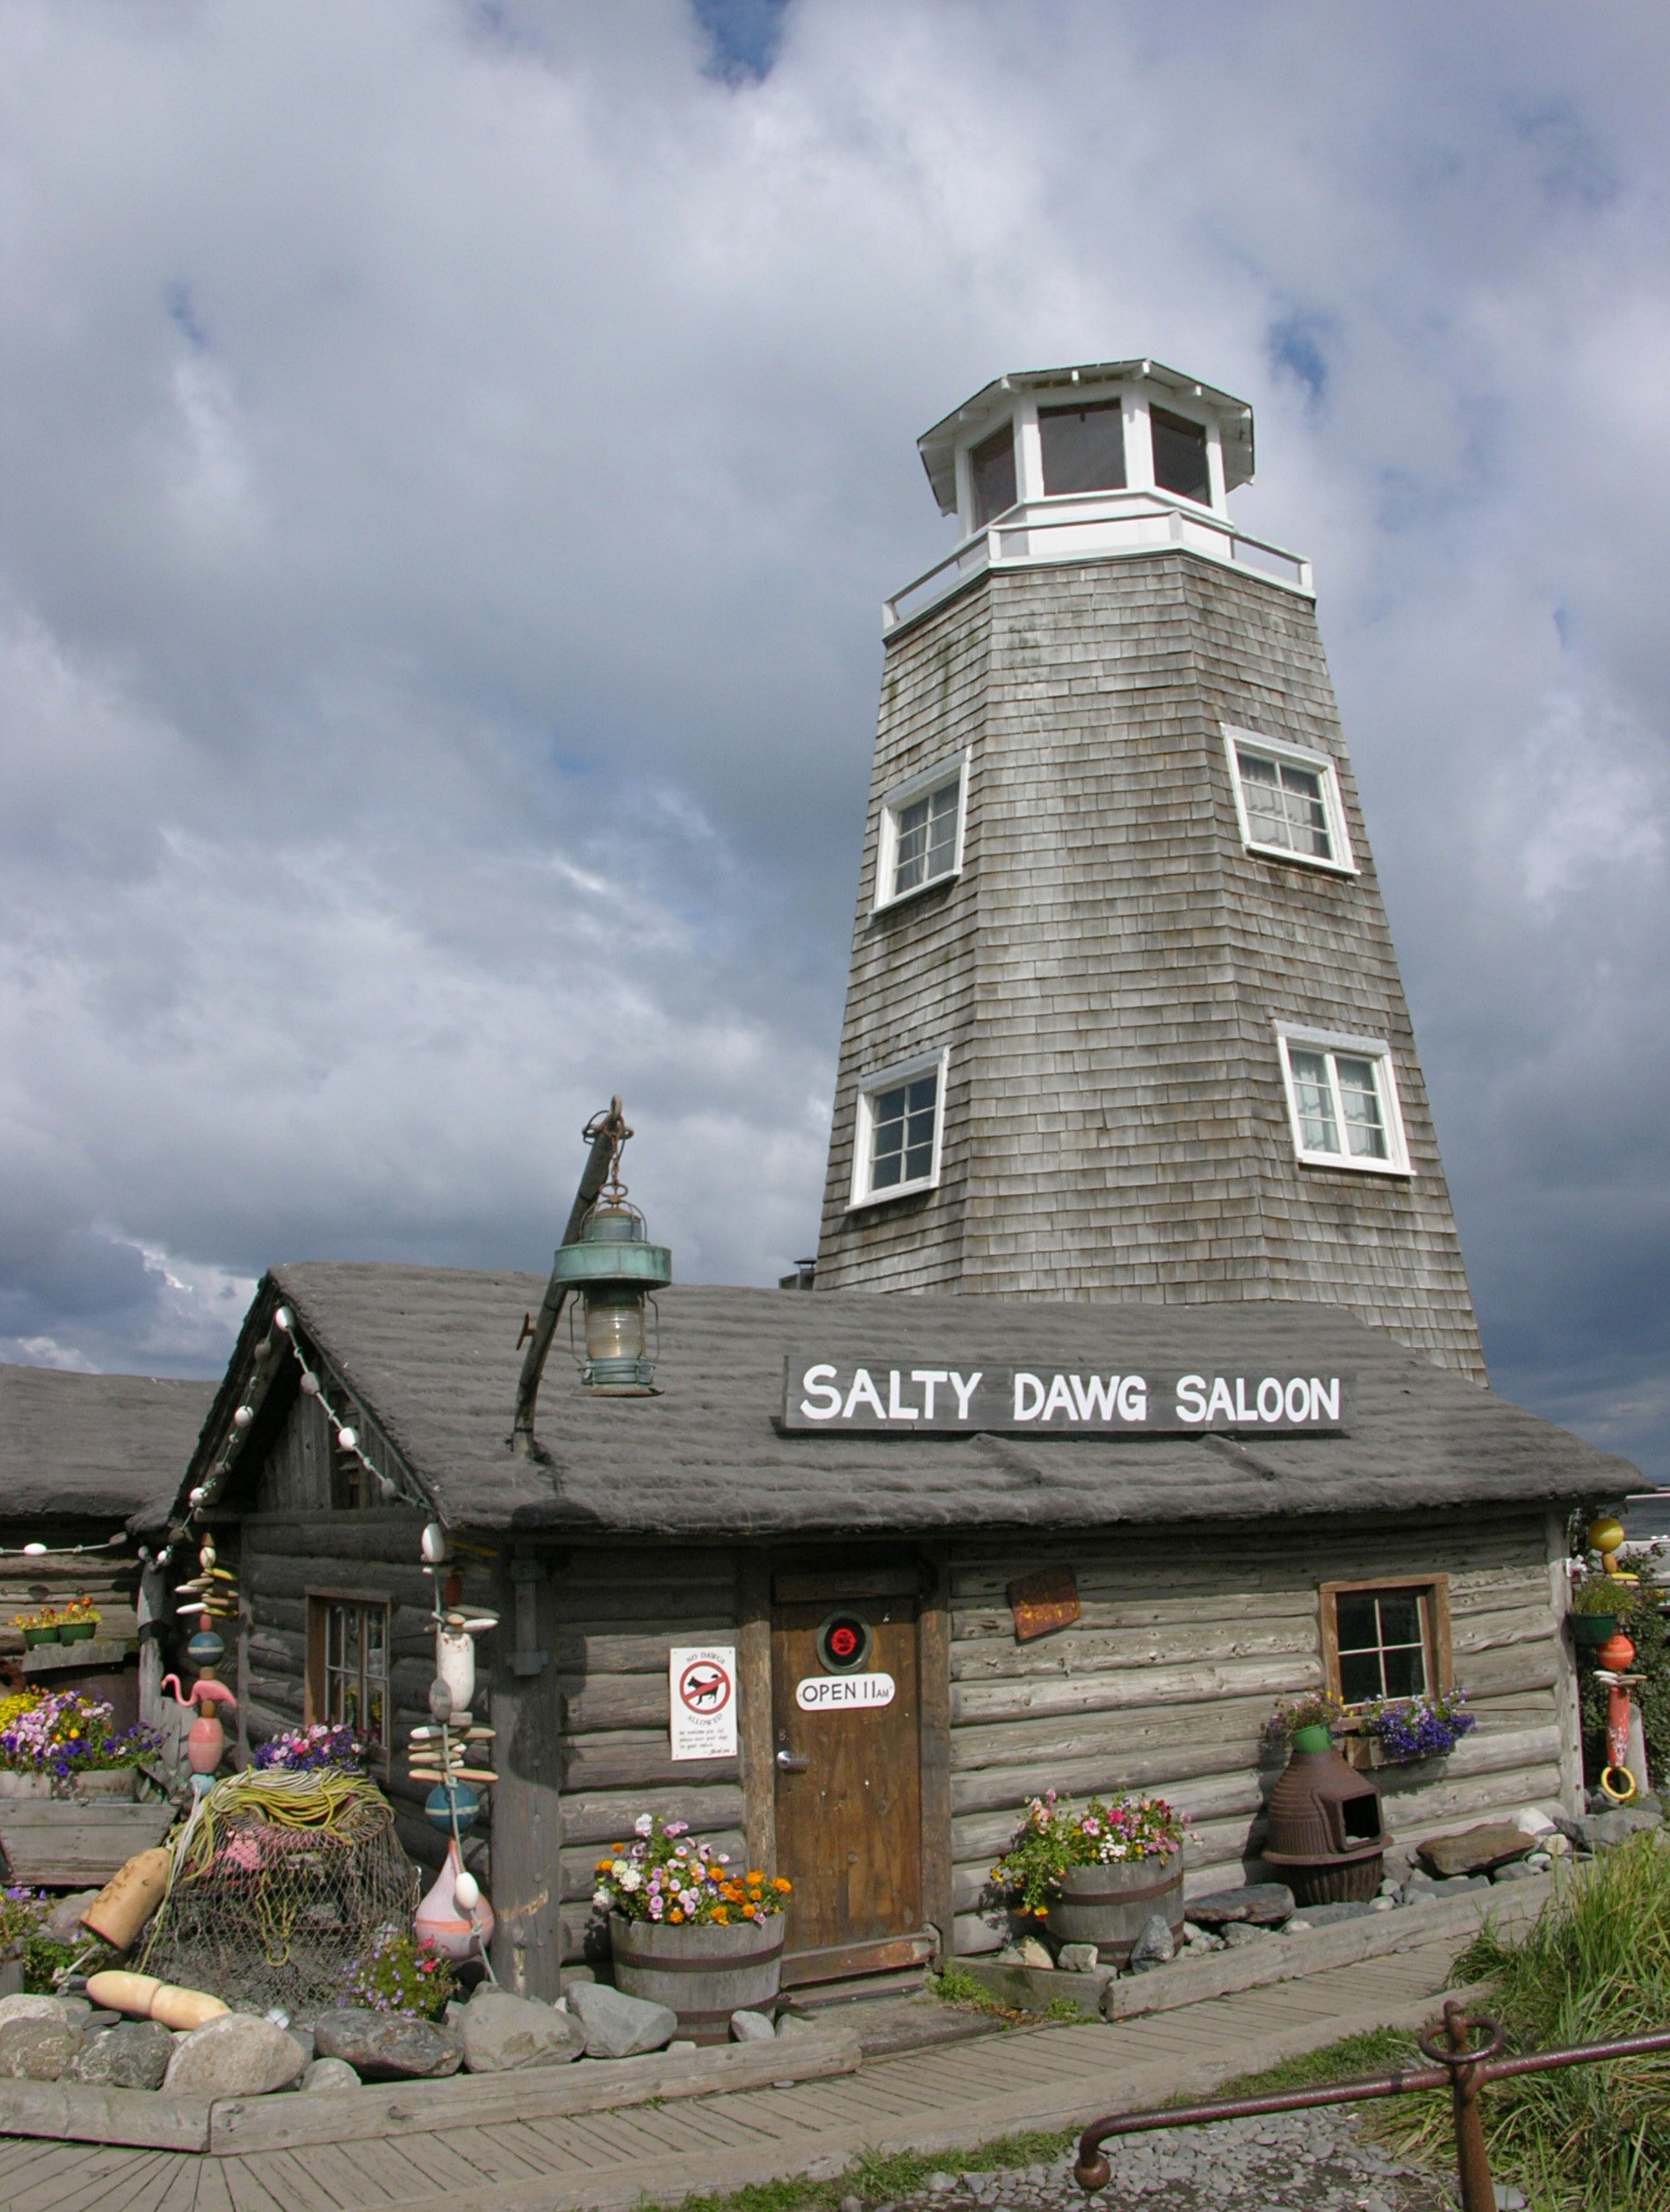 Salty dawg saloon bar in Alaska